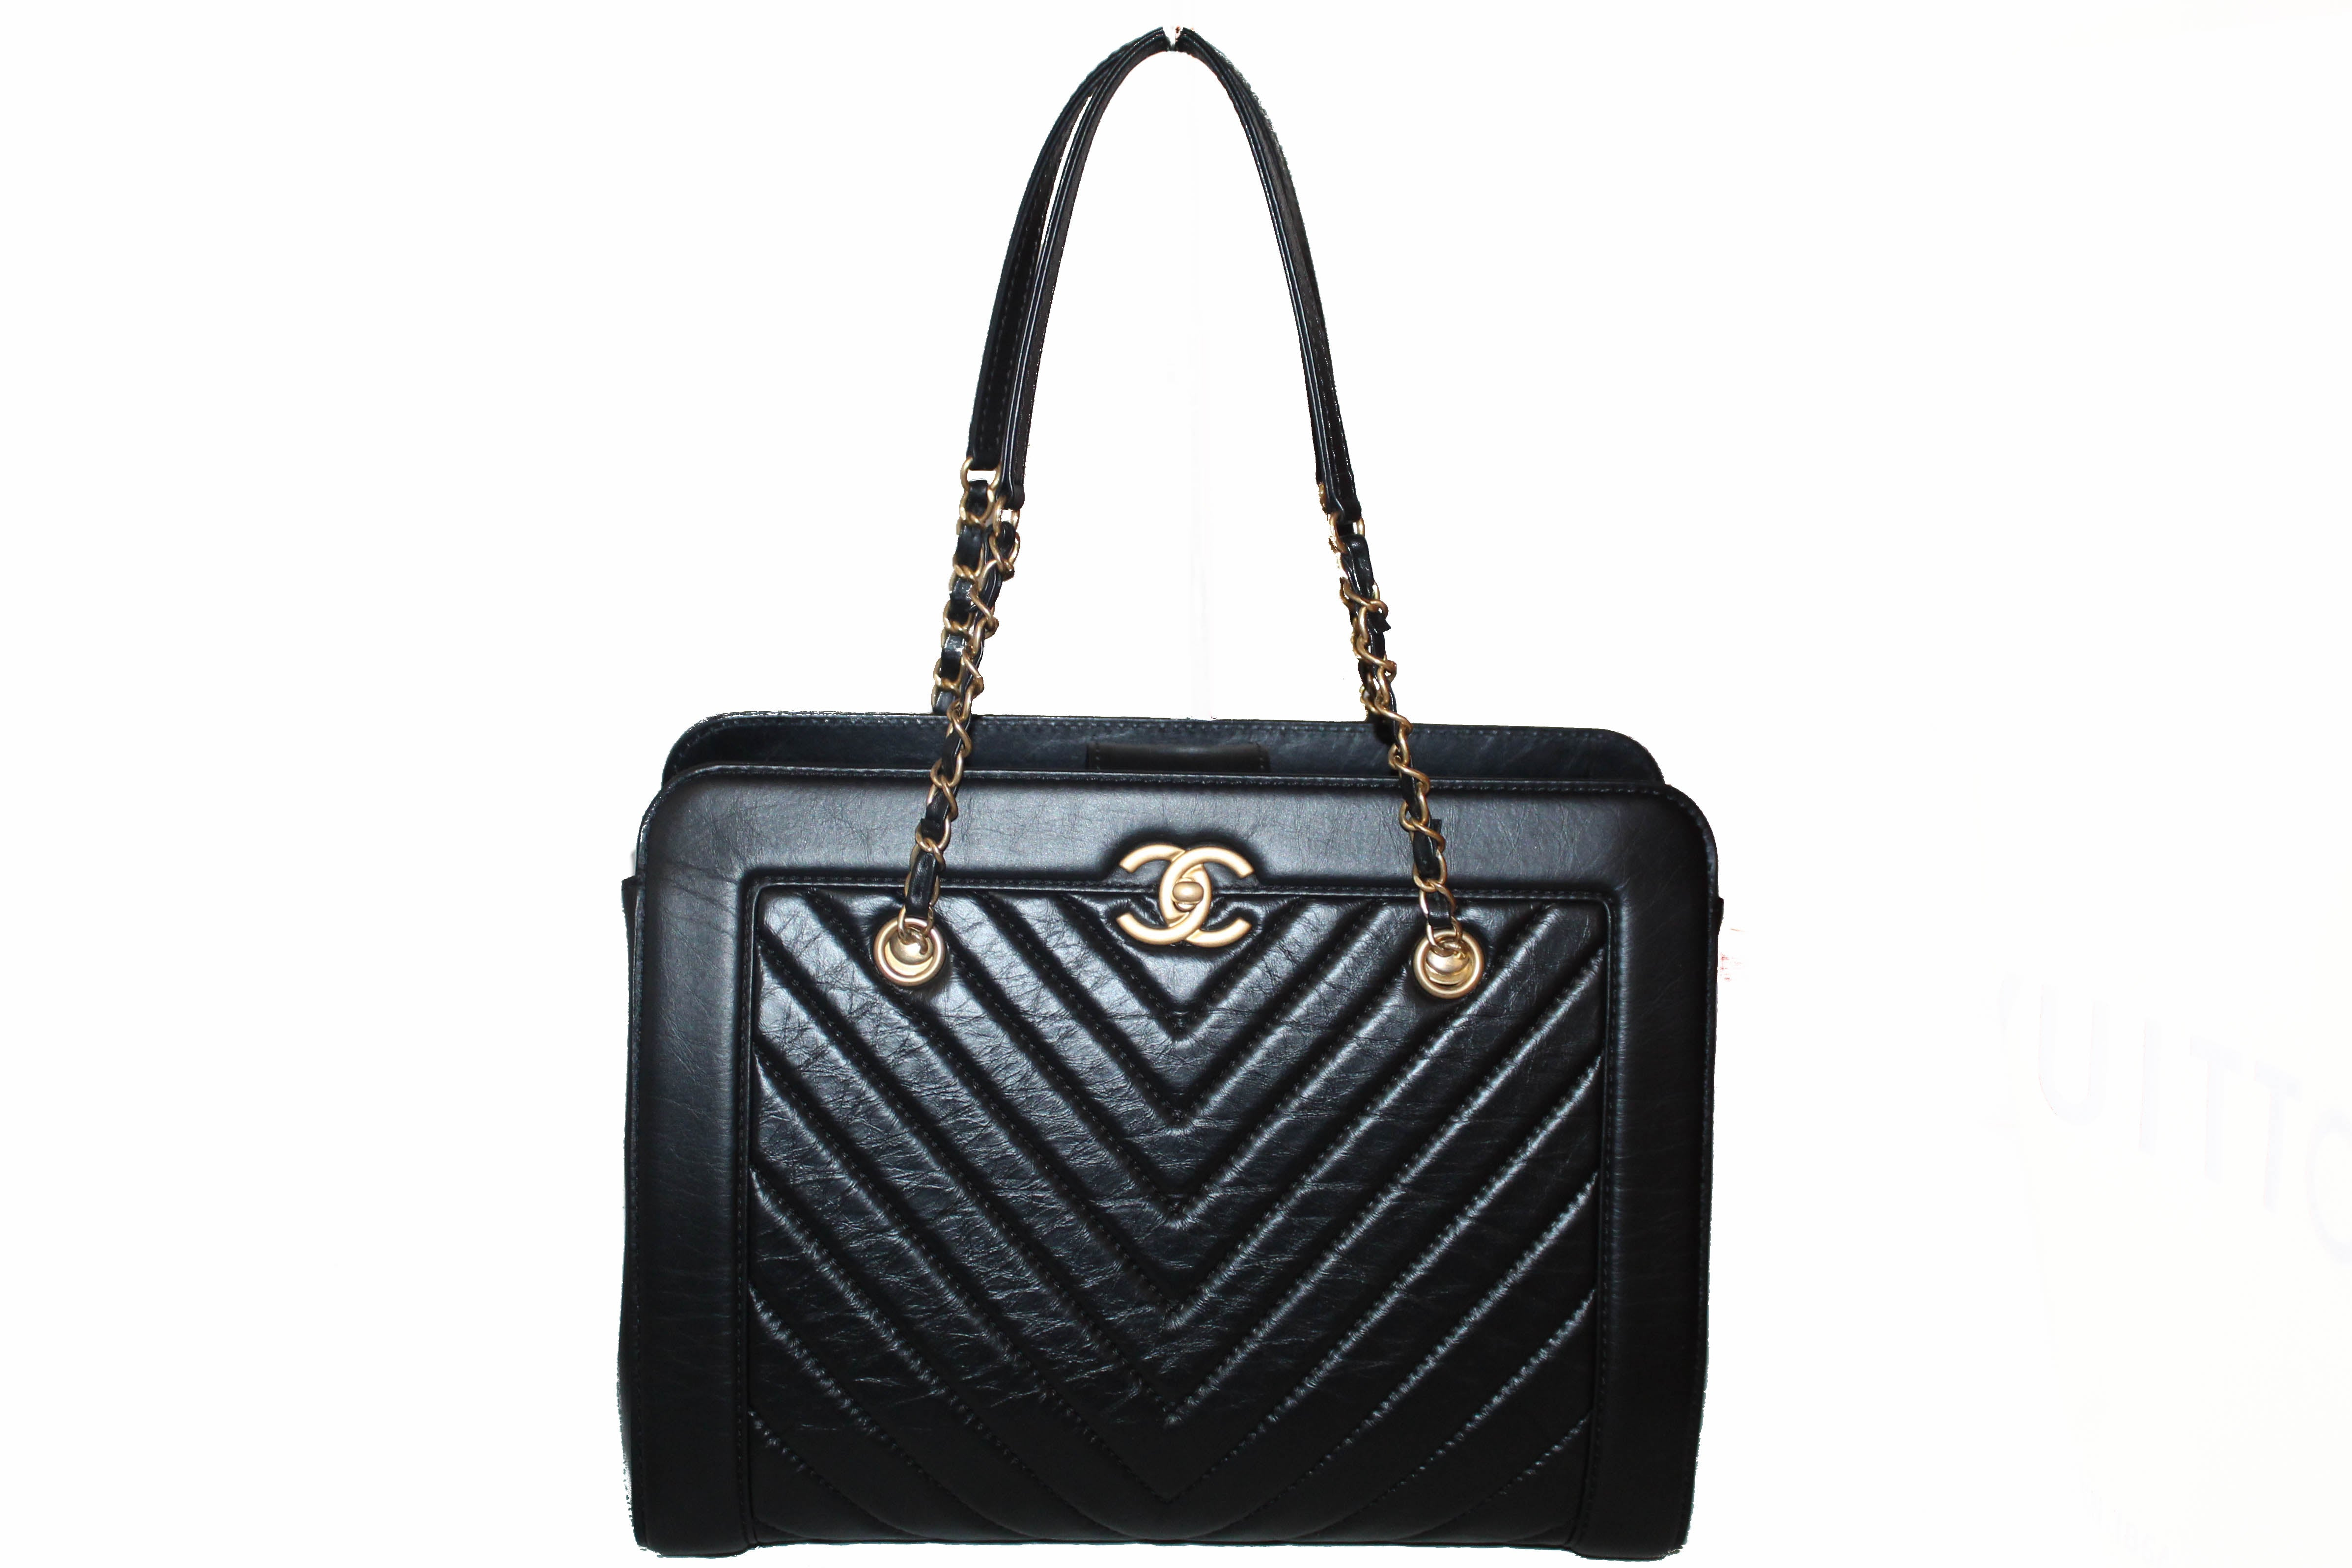 Authentic Chanel Chevron Quilted Black Vintage Calfskin Shopping Tote